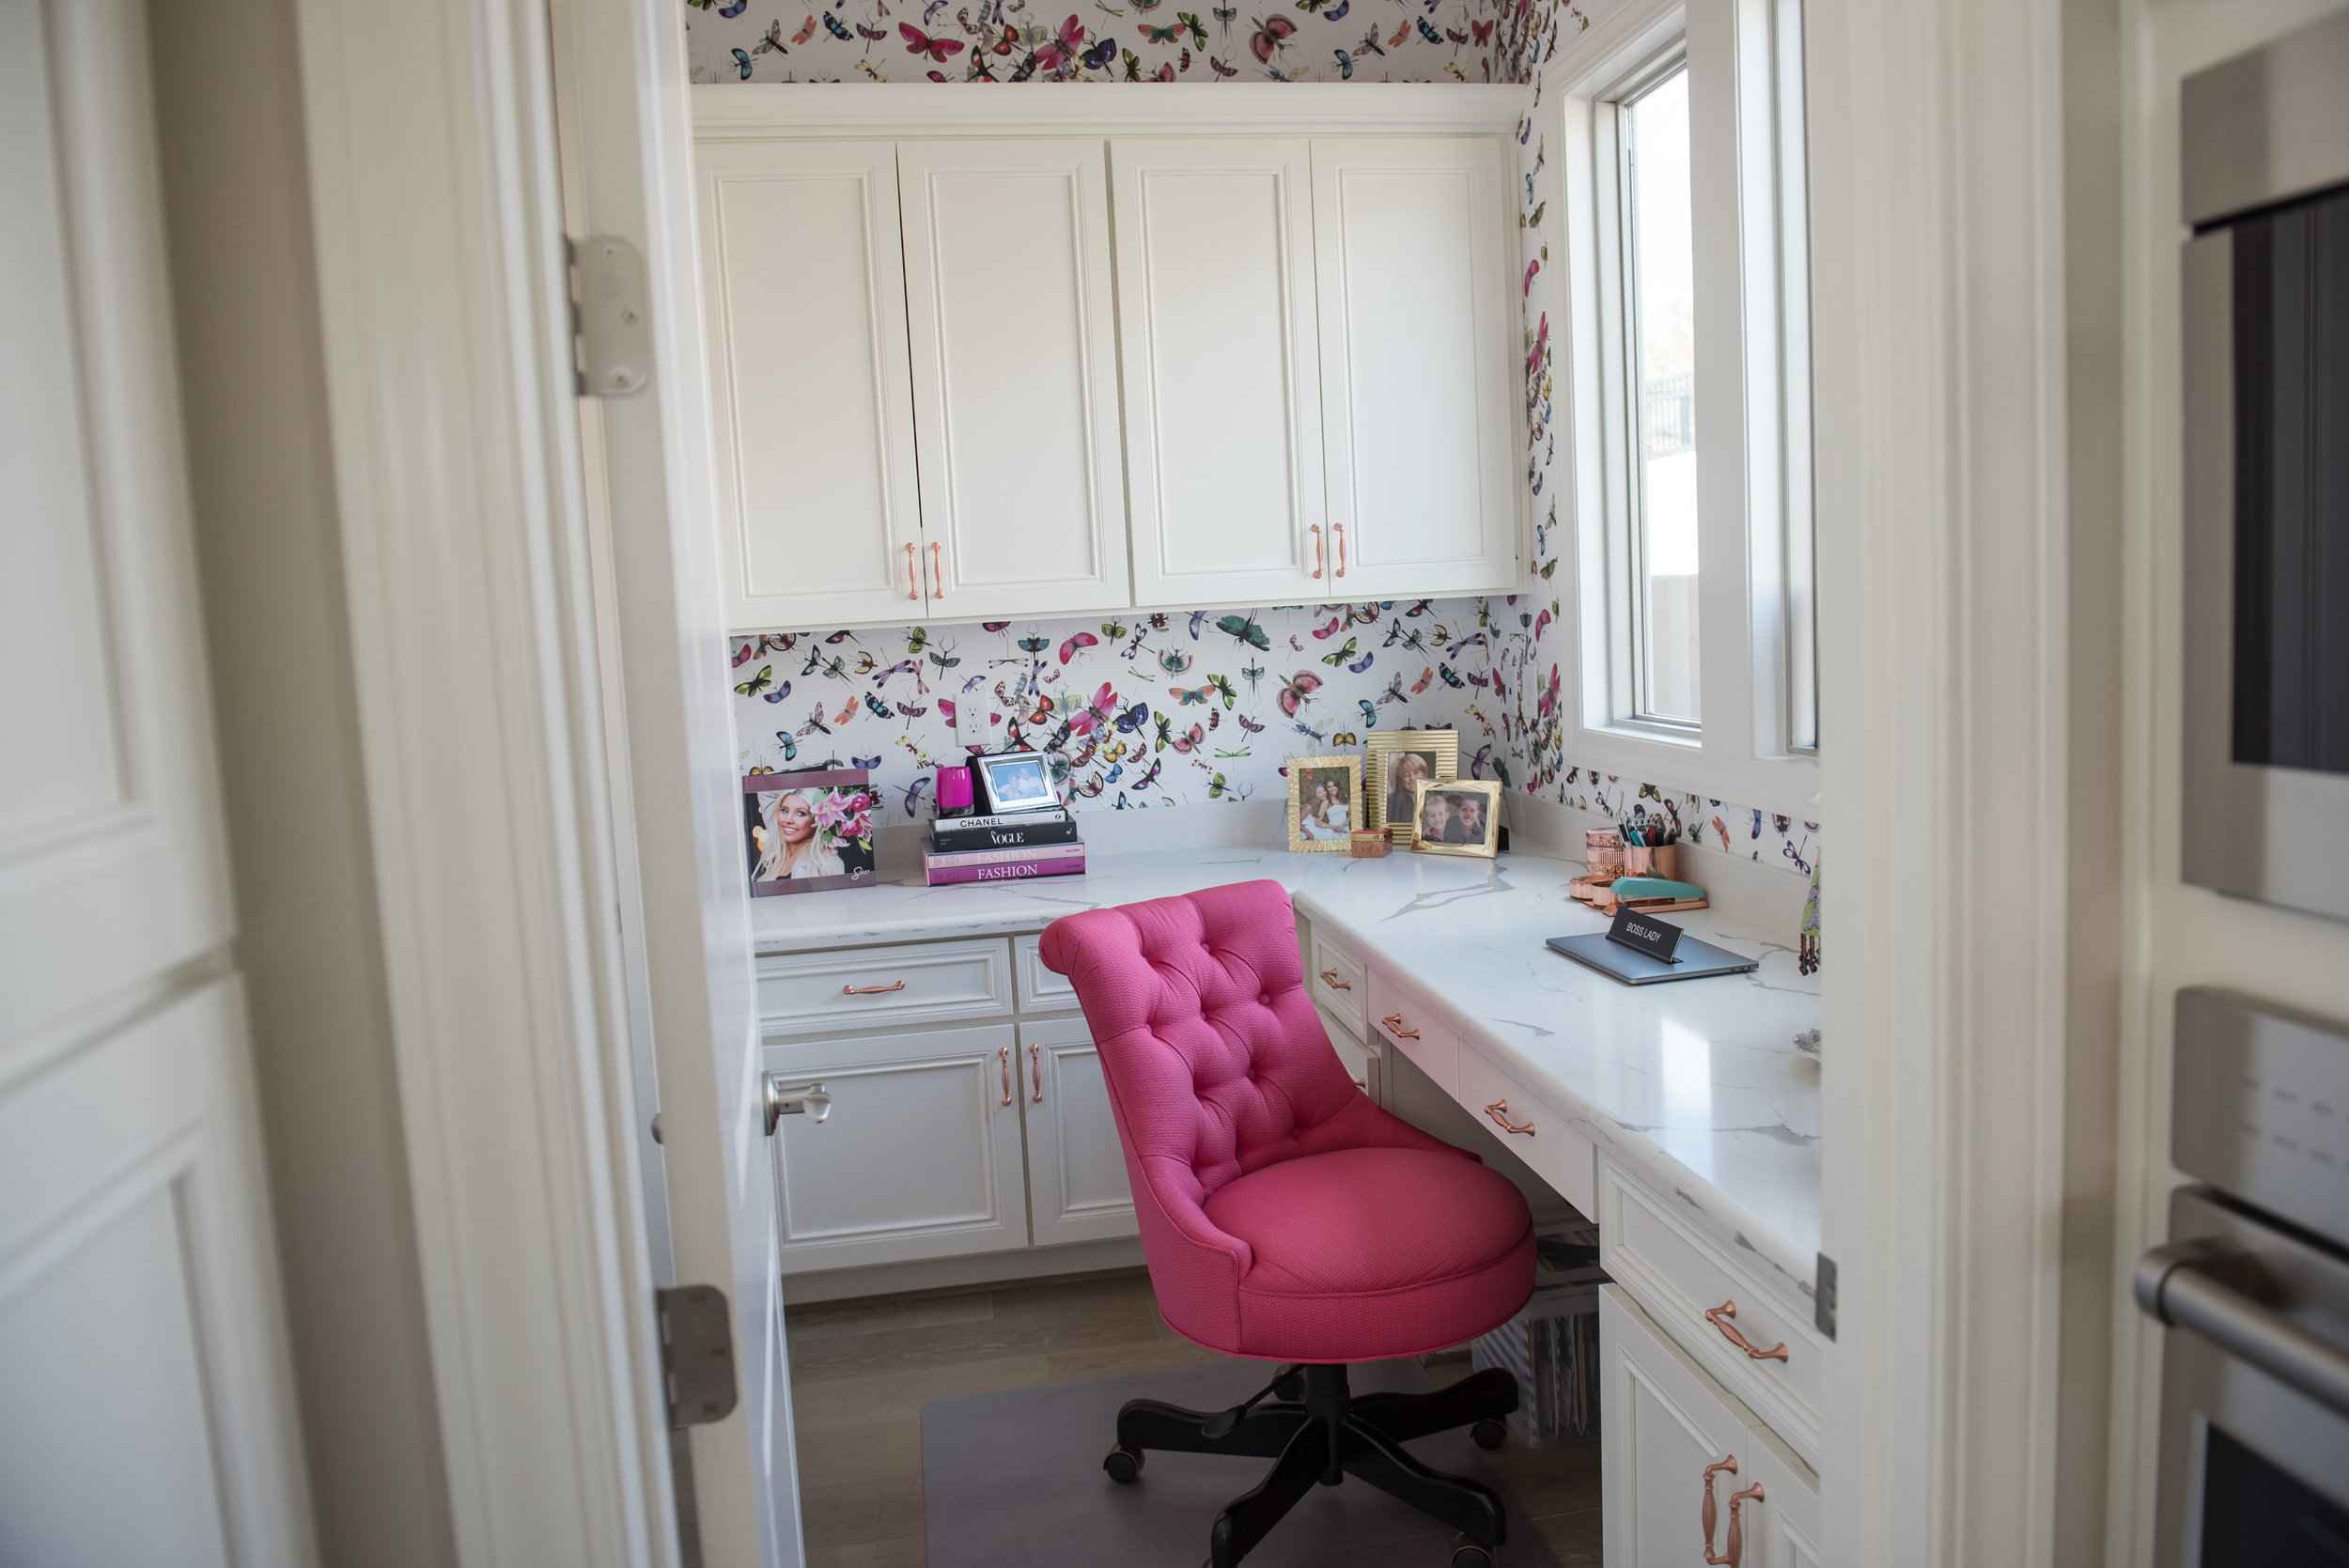 19 Office+Wallpaper+ChristianLacroix+Pink+Bright.jpg